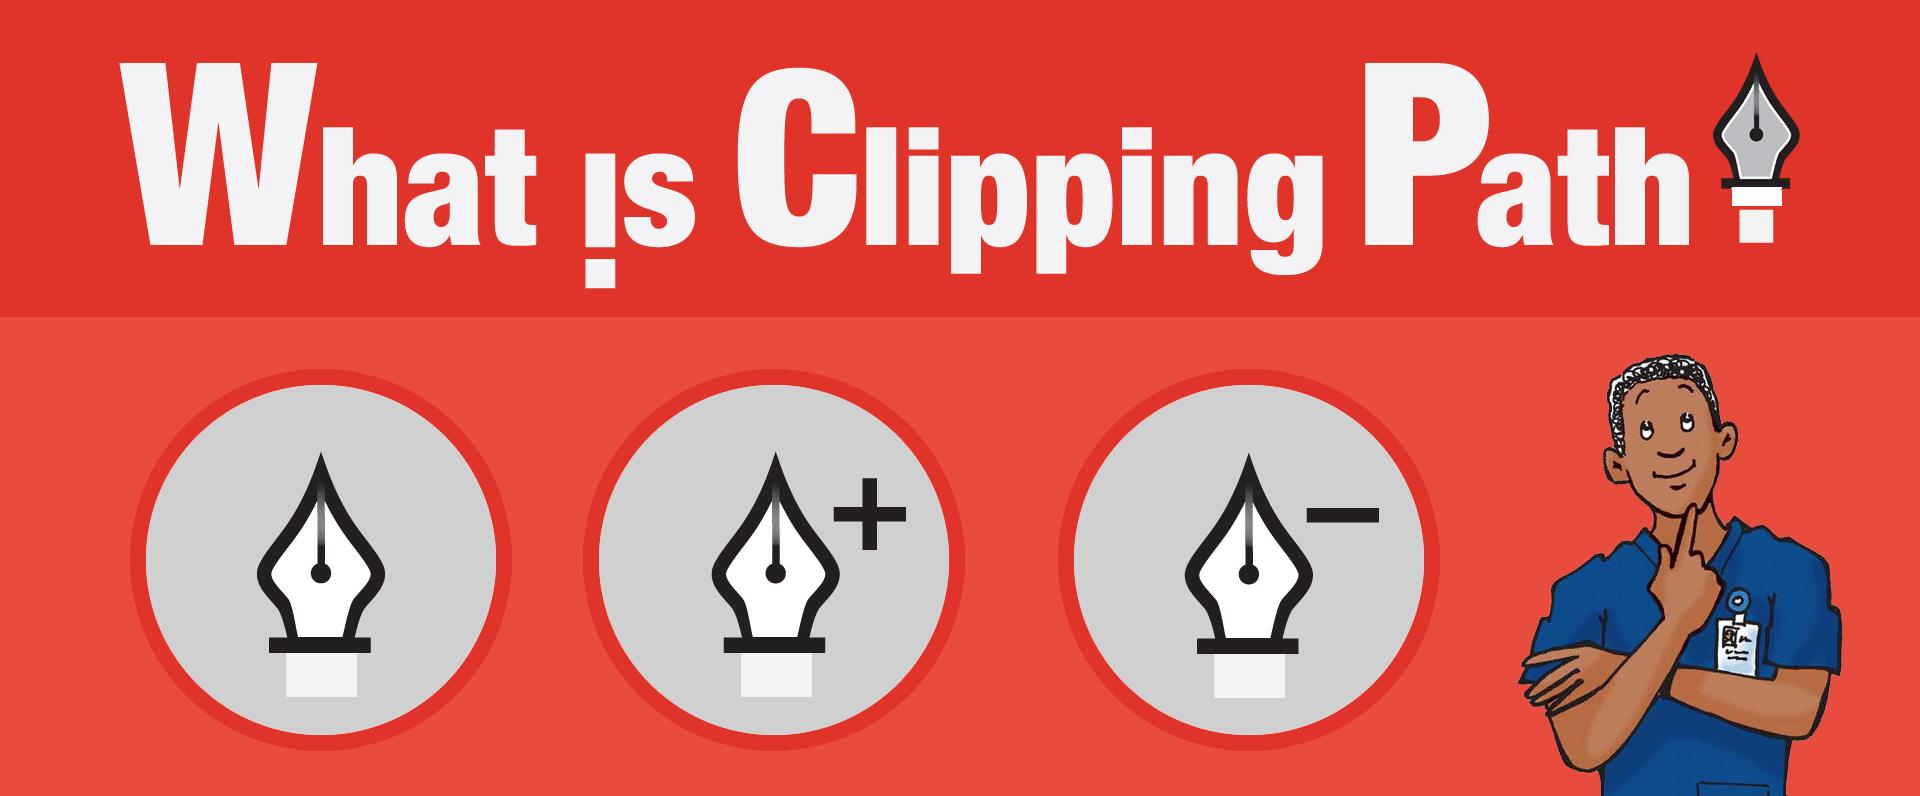 What is clipping path